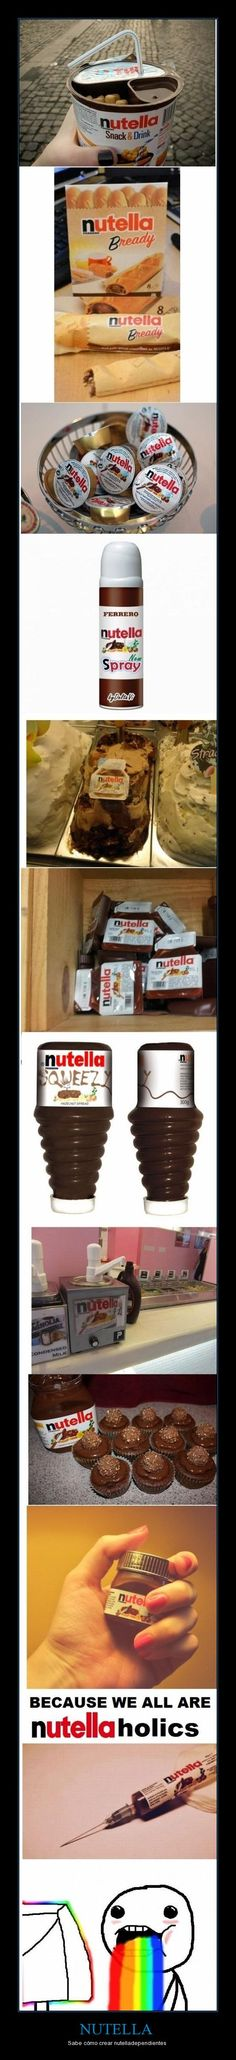 maybe I'll quit school and start importing these Nutella products...